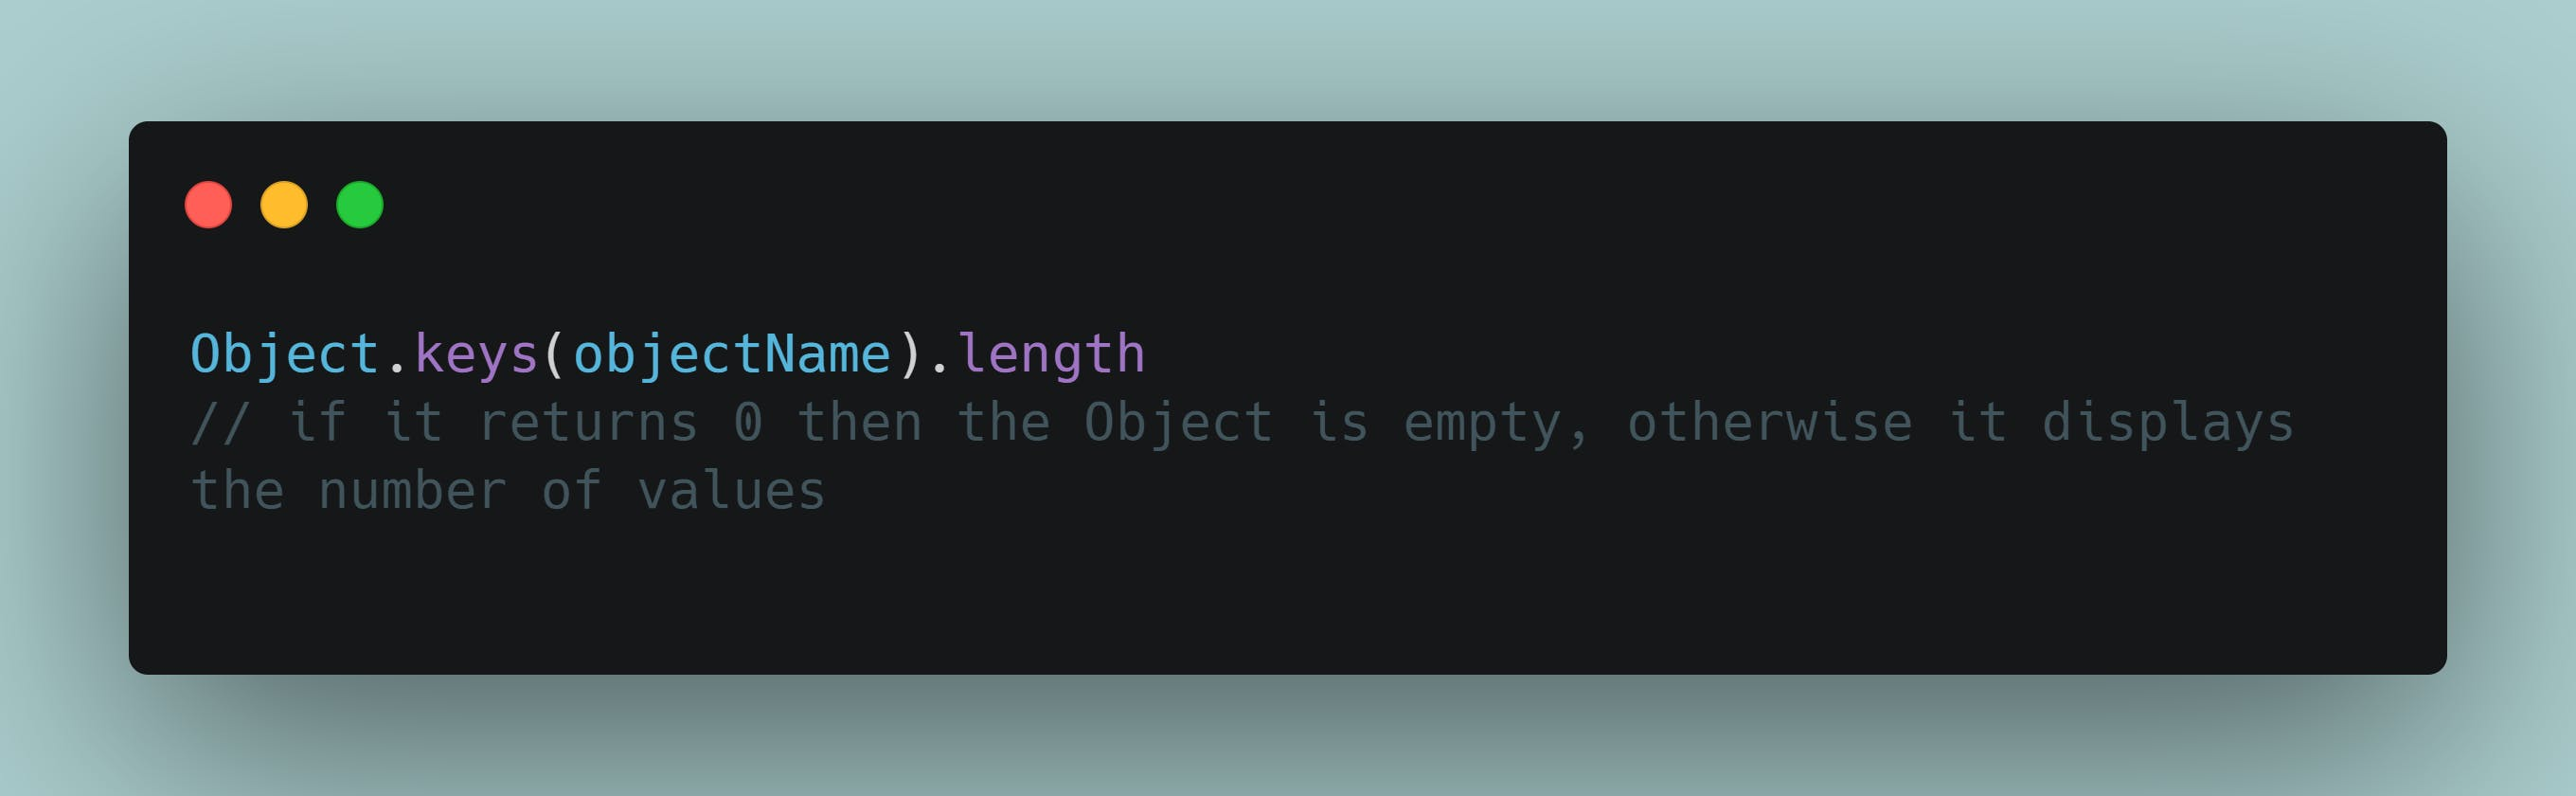 objectlength.png